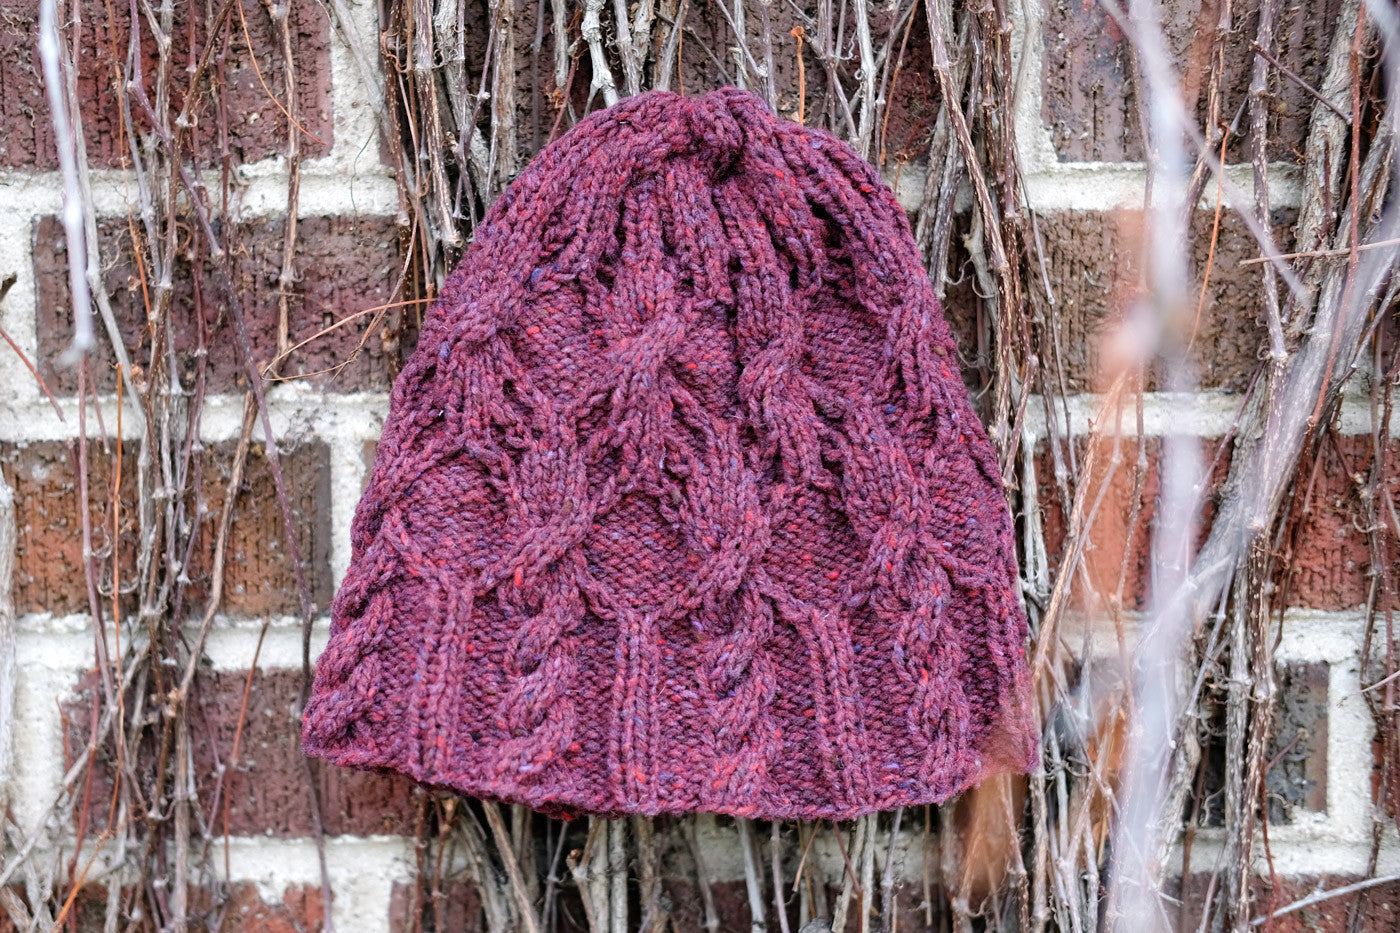 Cleridae Hat in Brooklyn Tweed Shelter Homemade Jam